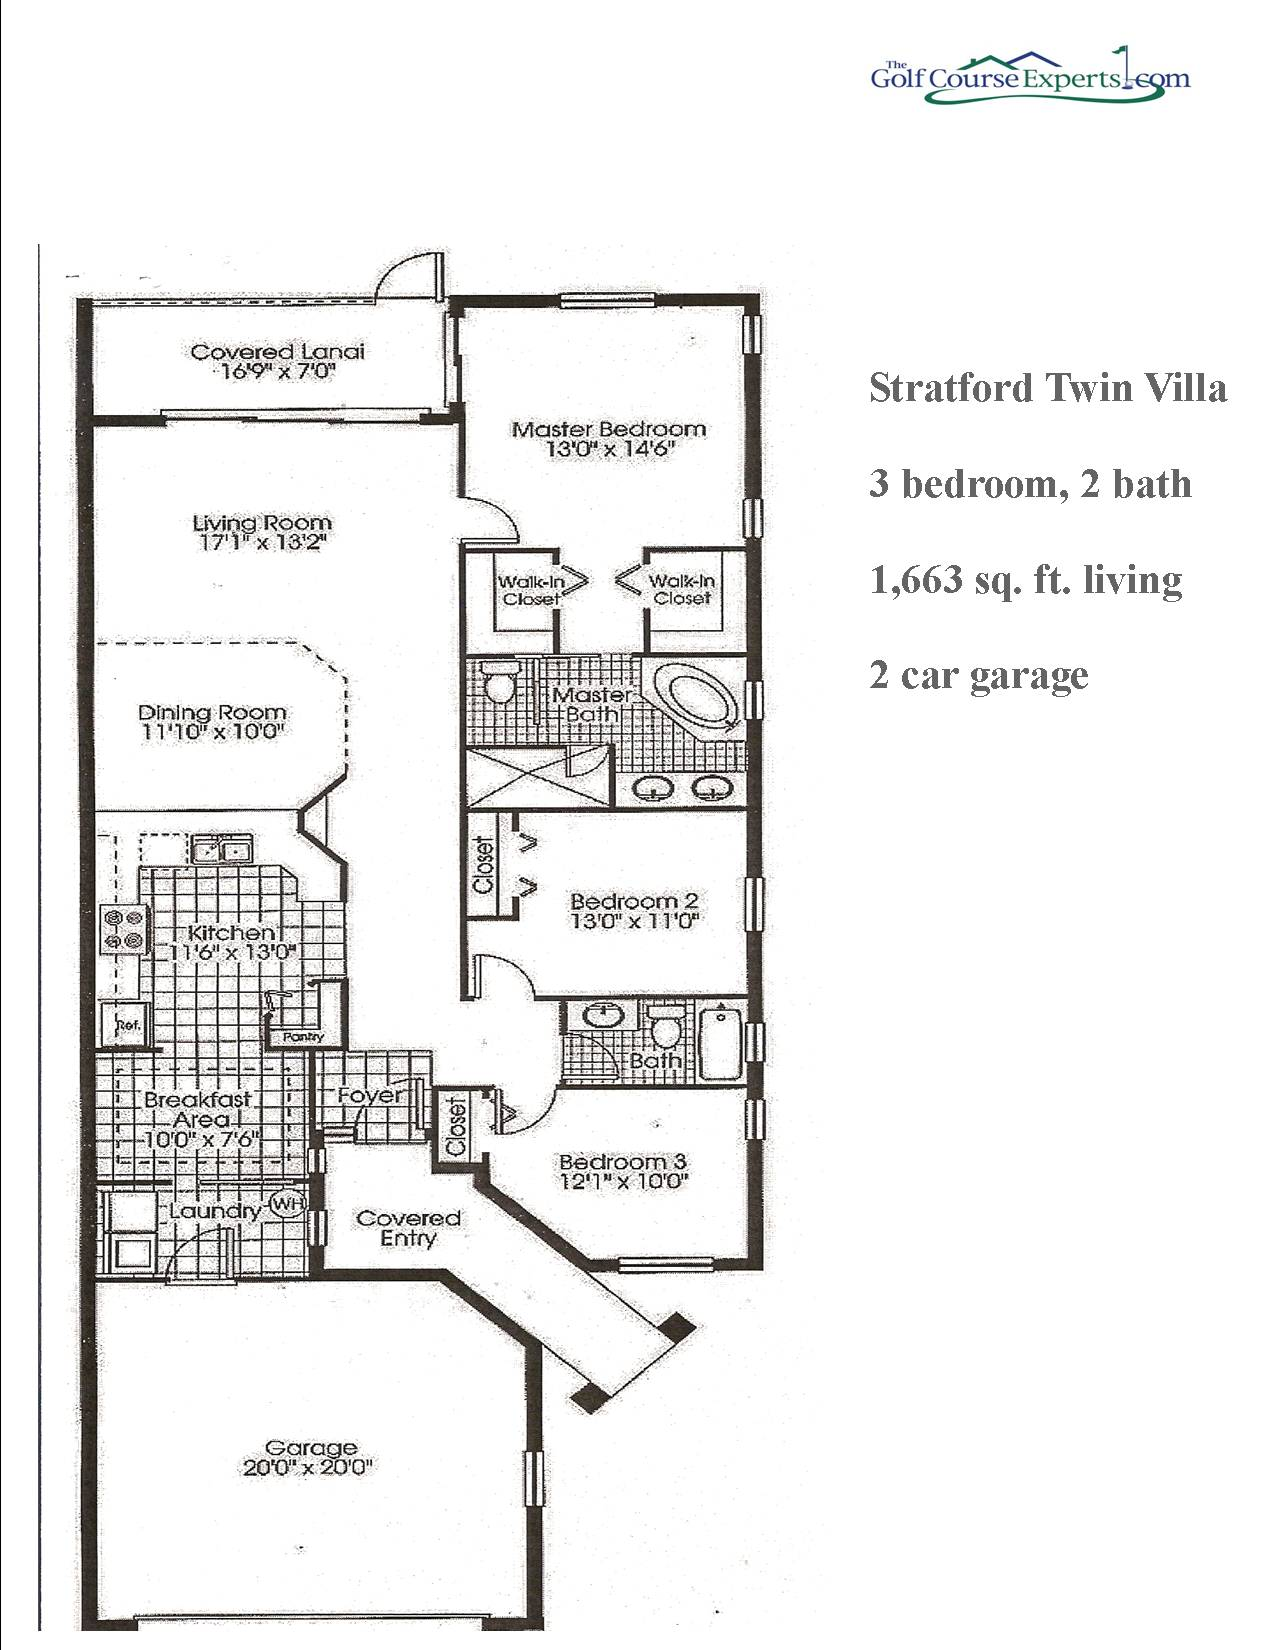 legends property floor plans leading country club sales team executive homes